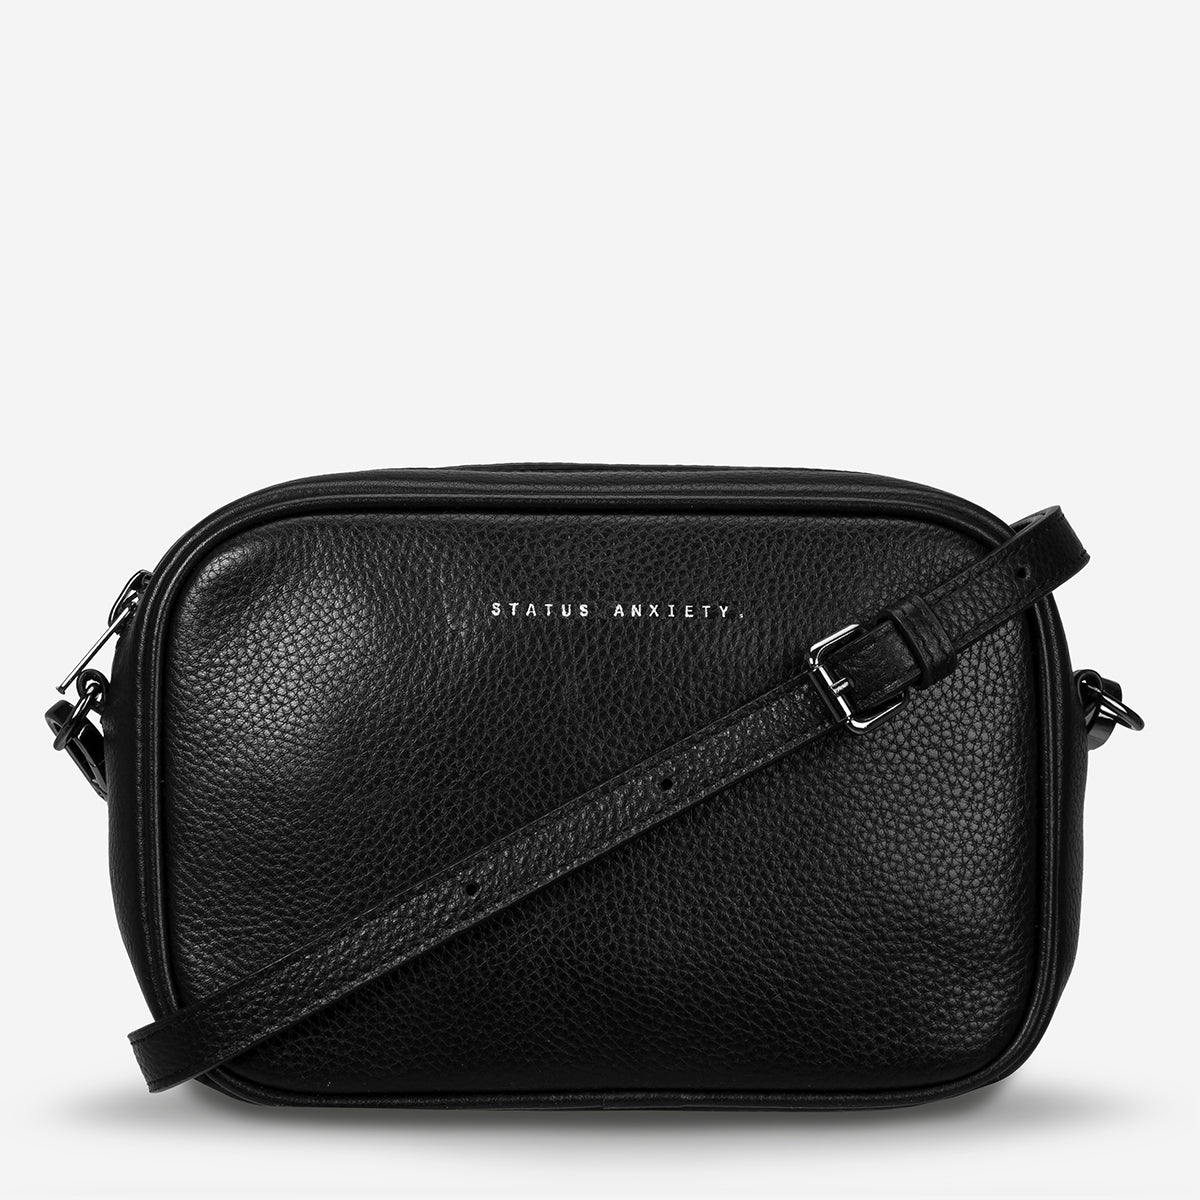 Status Anxiety Plunder Women's Crossbody Leather Bag - Black